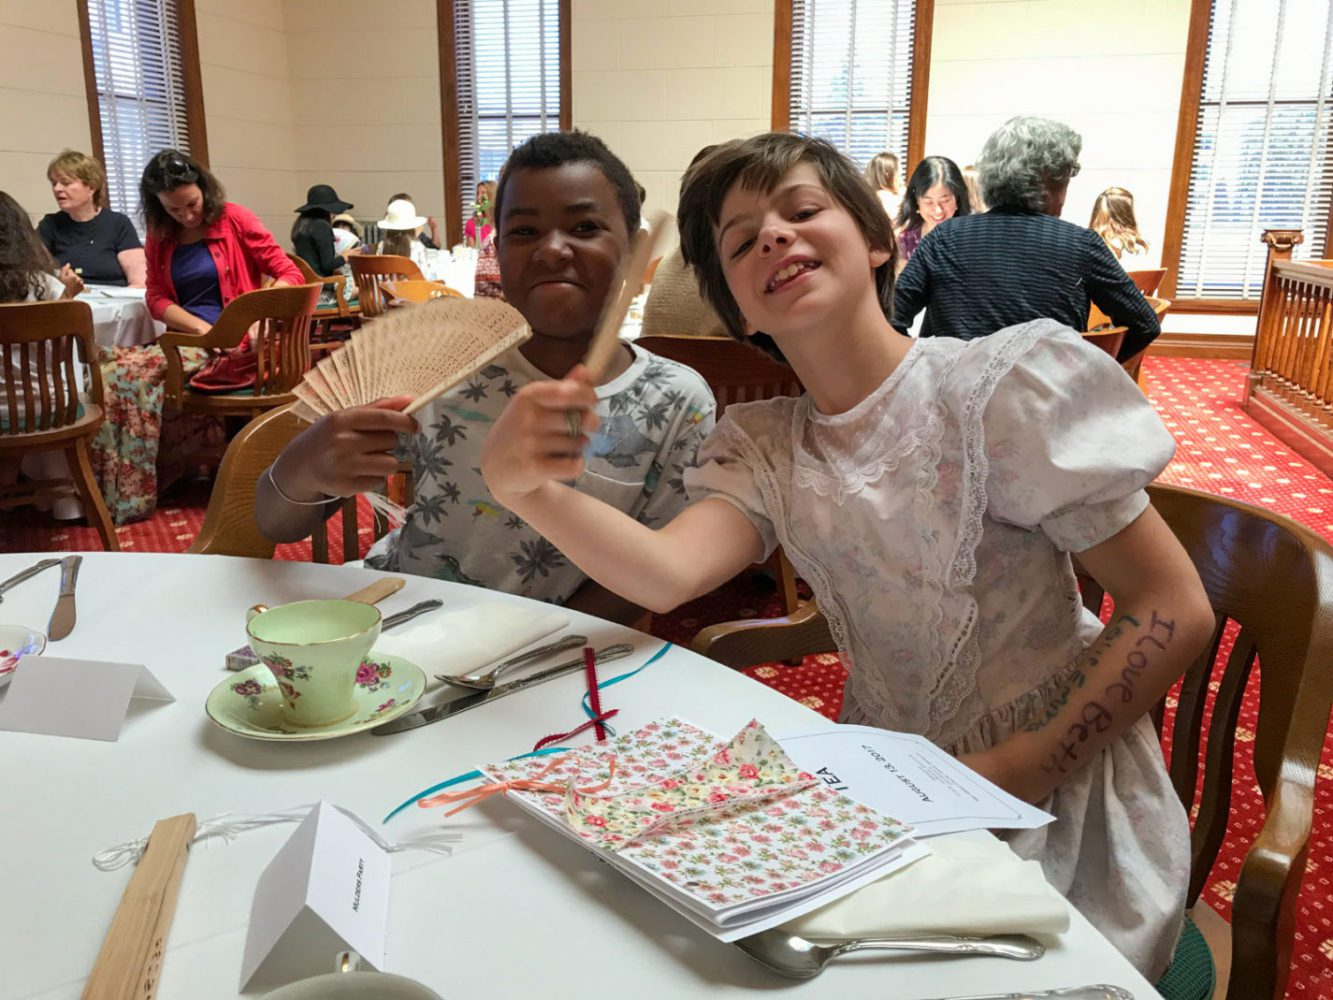 Two young visitors enjoy afternoon tea at Victorian Days at San Mateo County History Museum